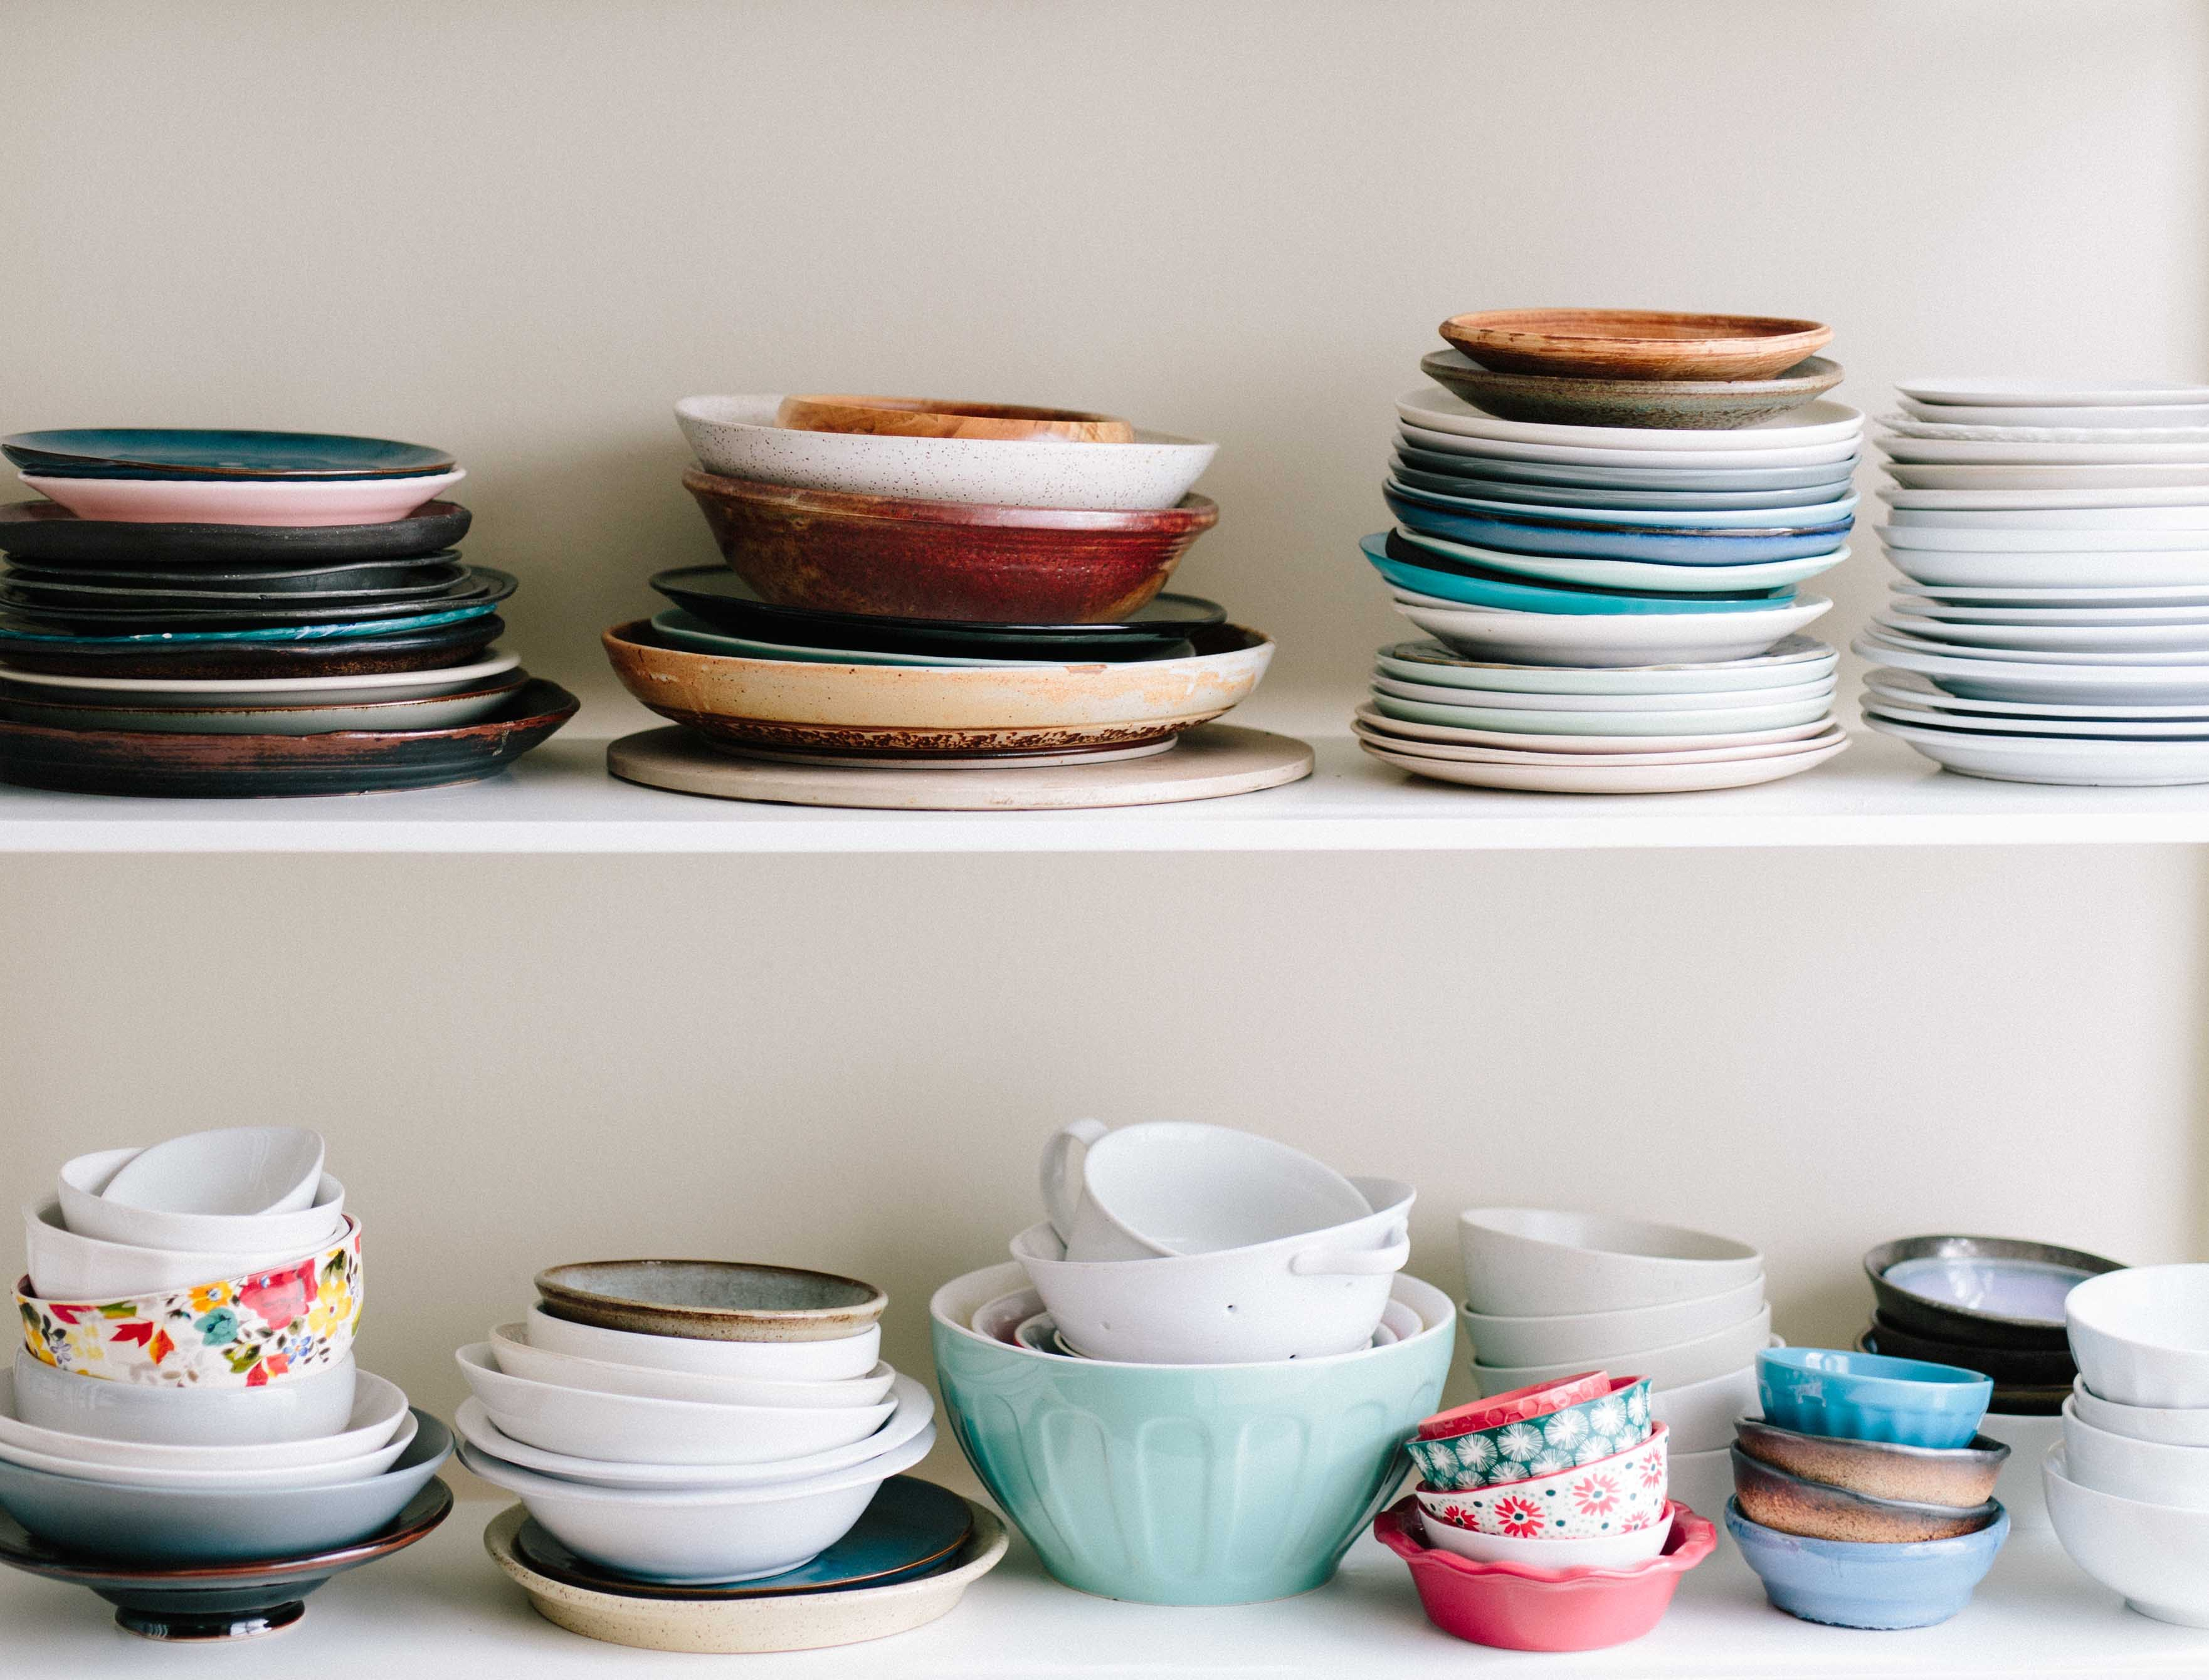 cleaning dishes lowers anxiety